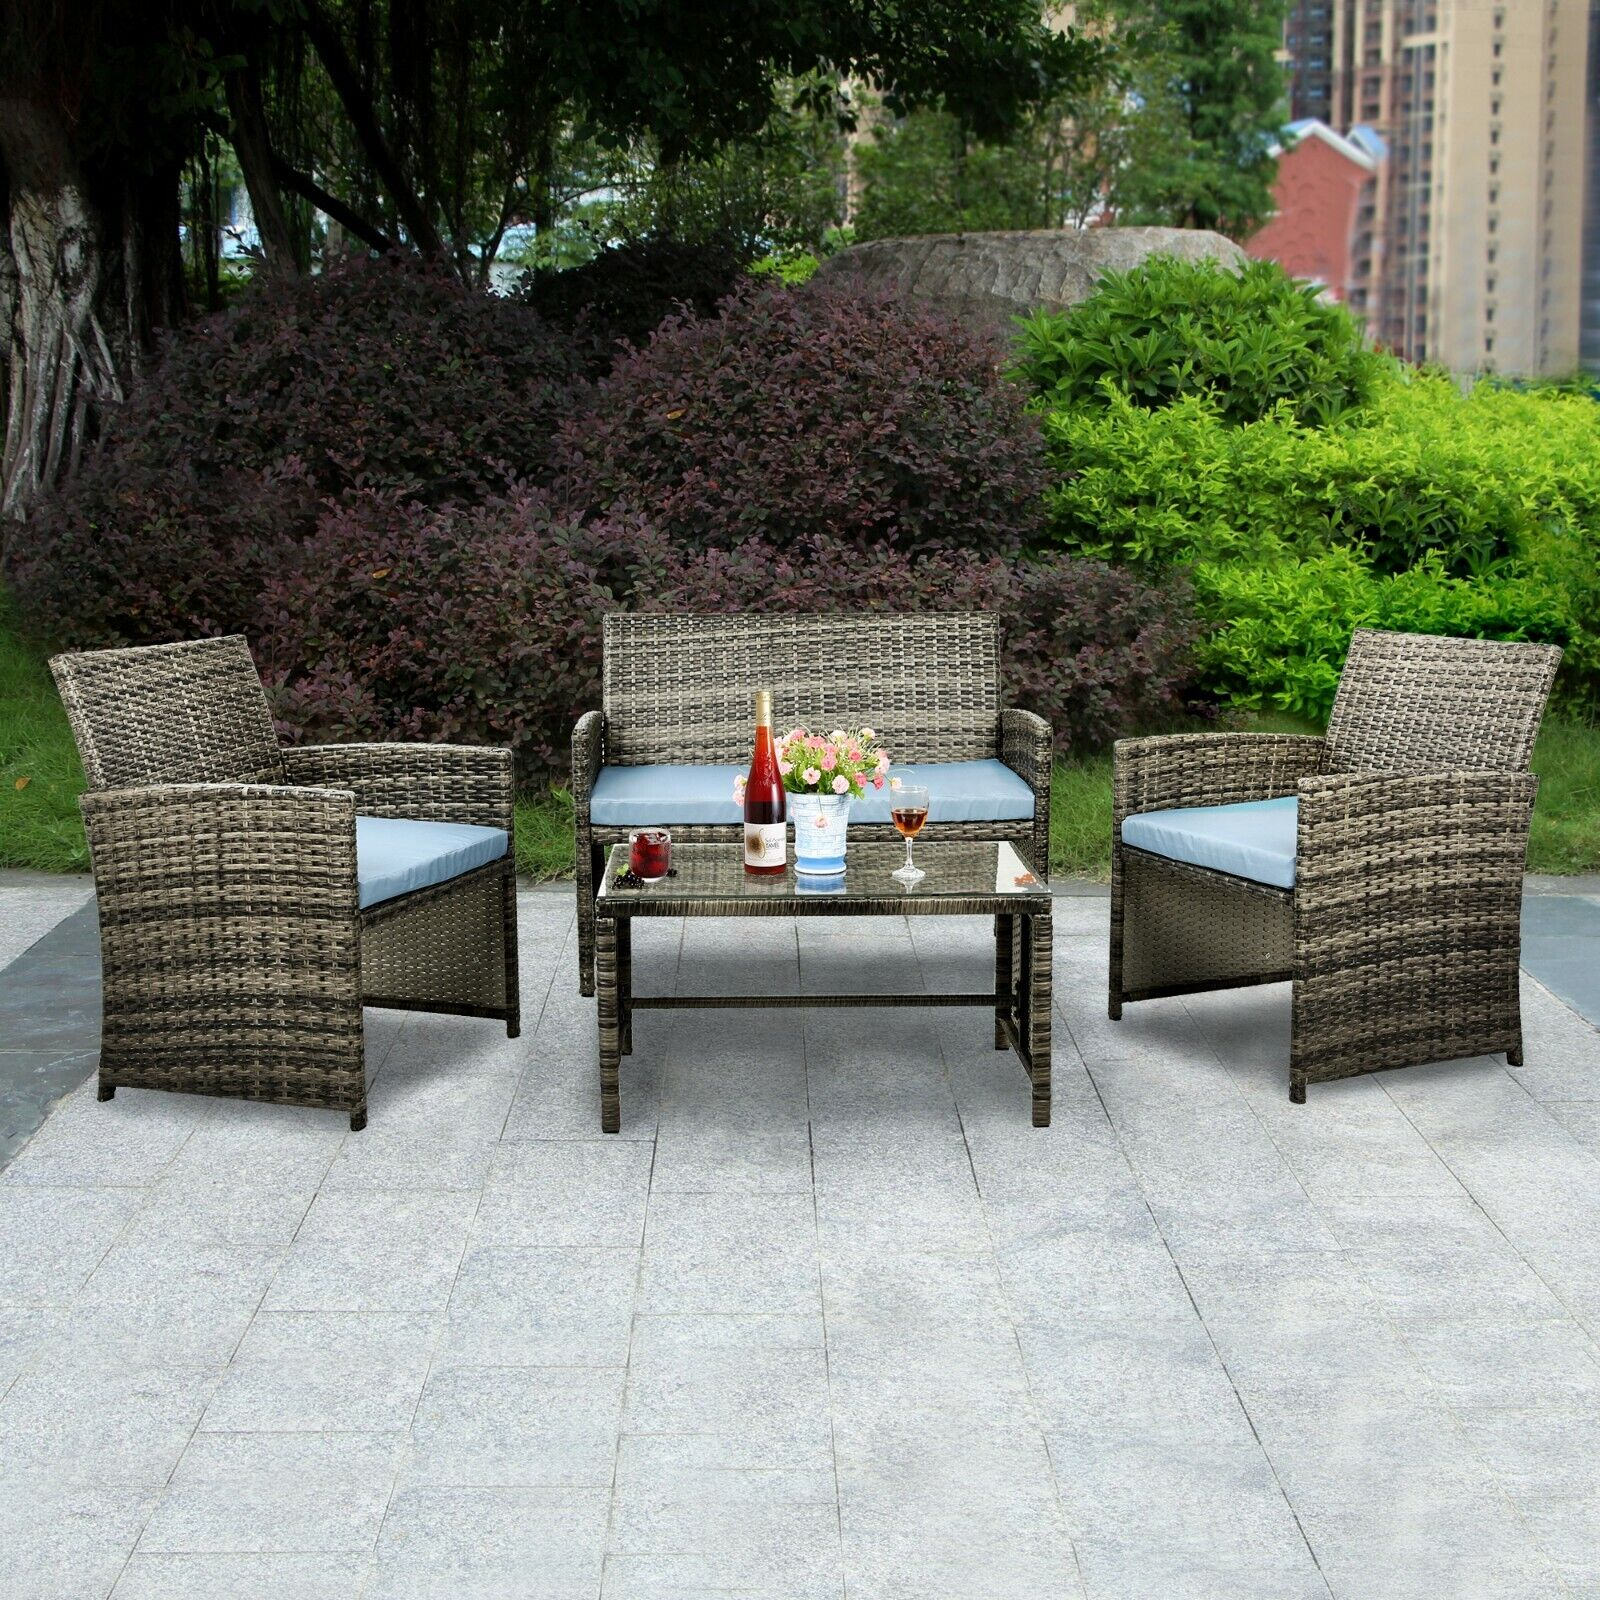 Garden Furniture - 4 PCS Outdoor Patio Rattan Wicker Furniture Set Table Sofa Cushioned Garden Deck